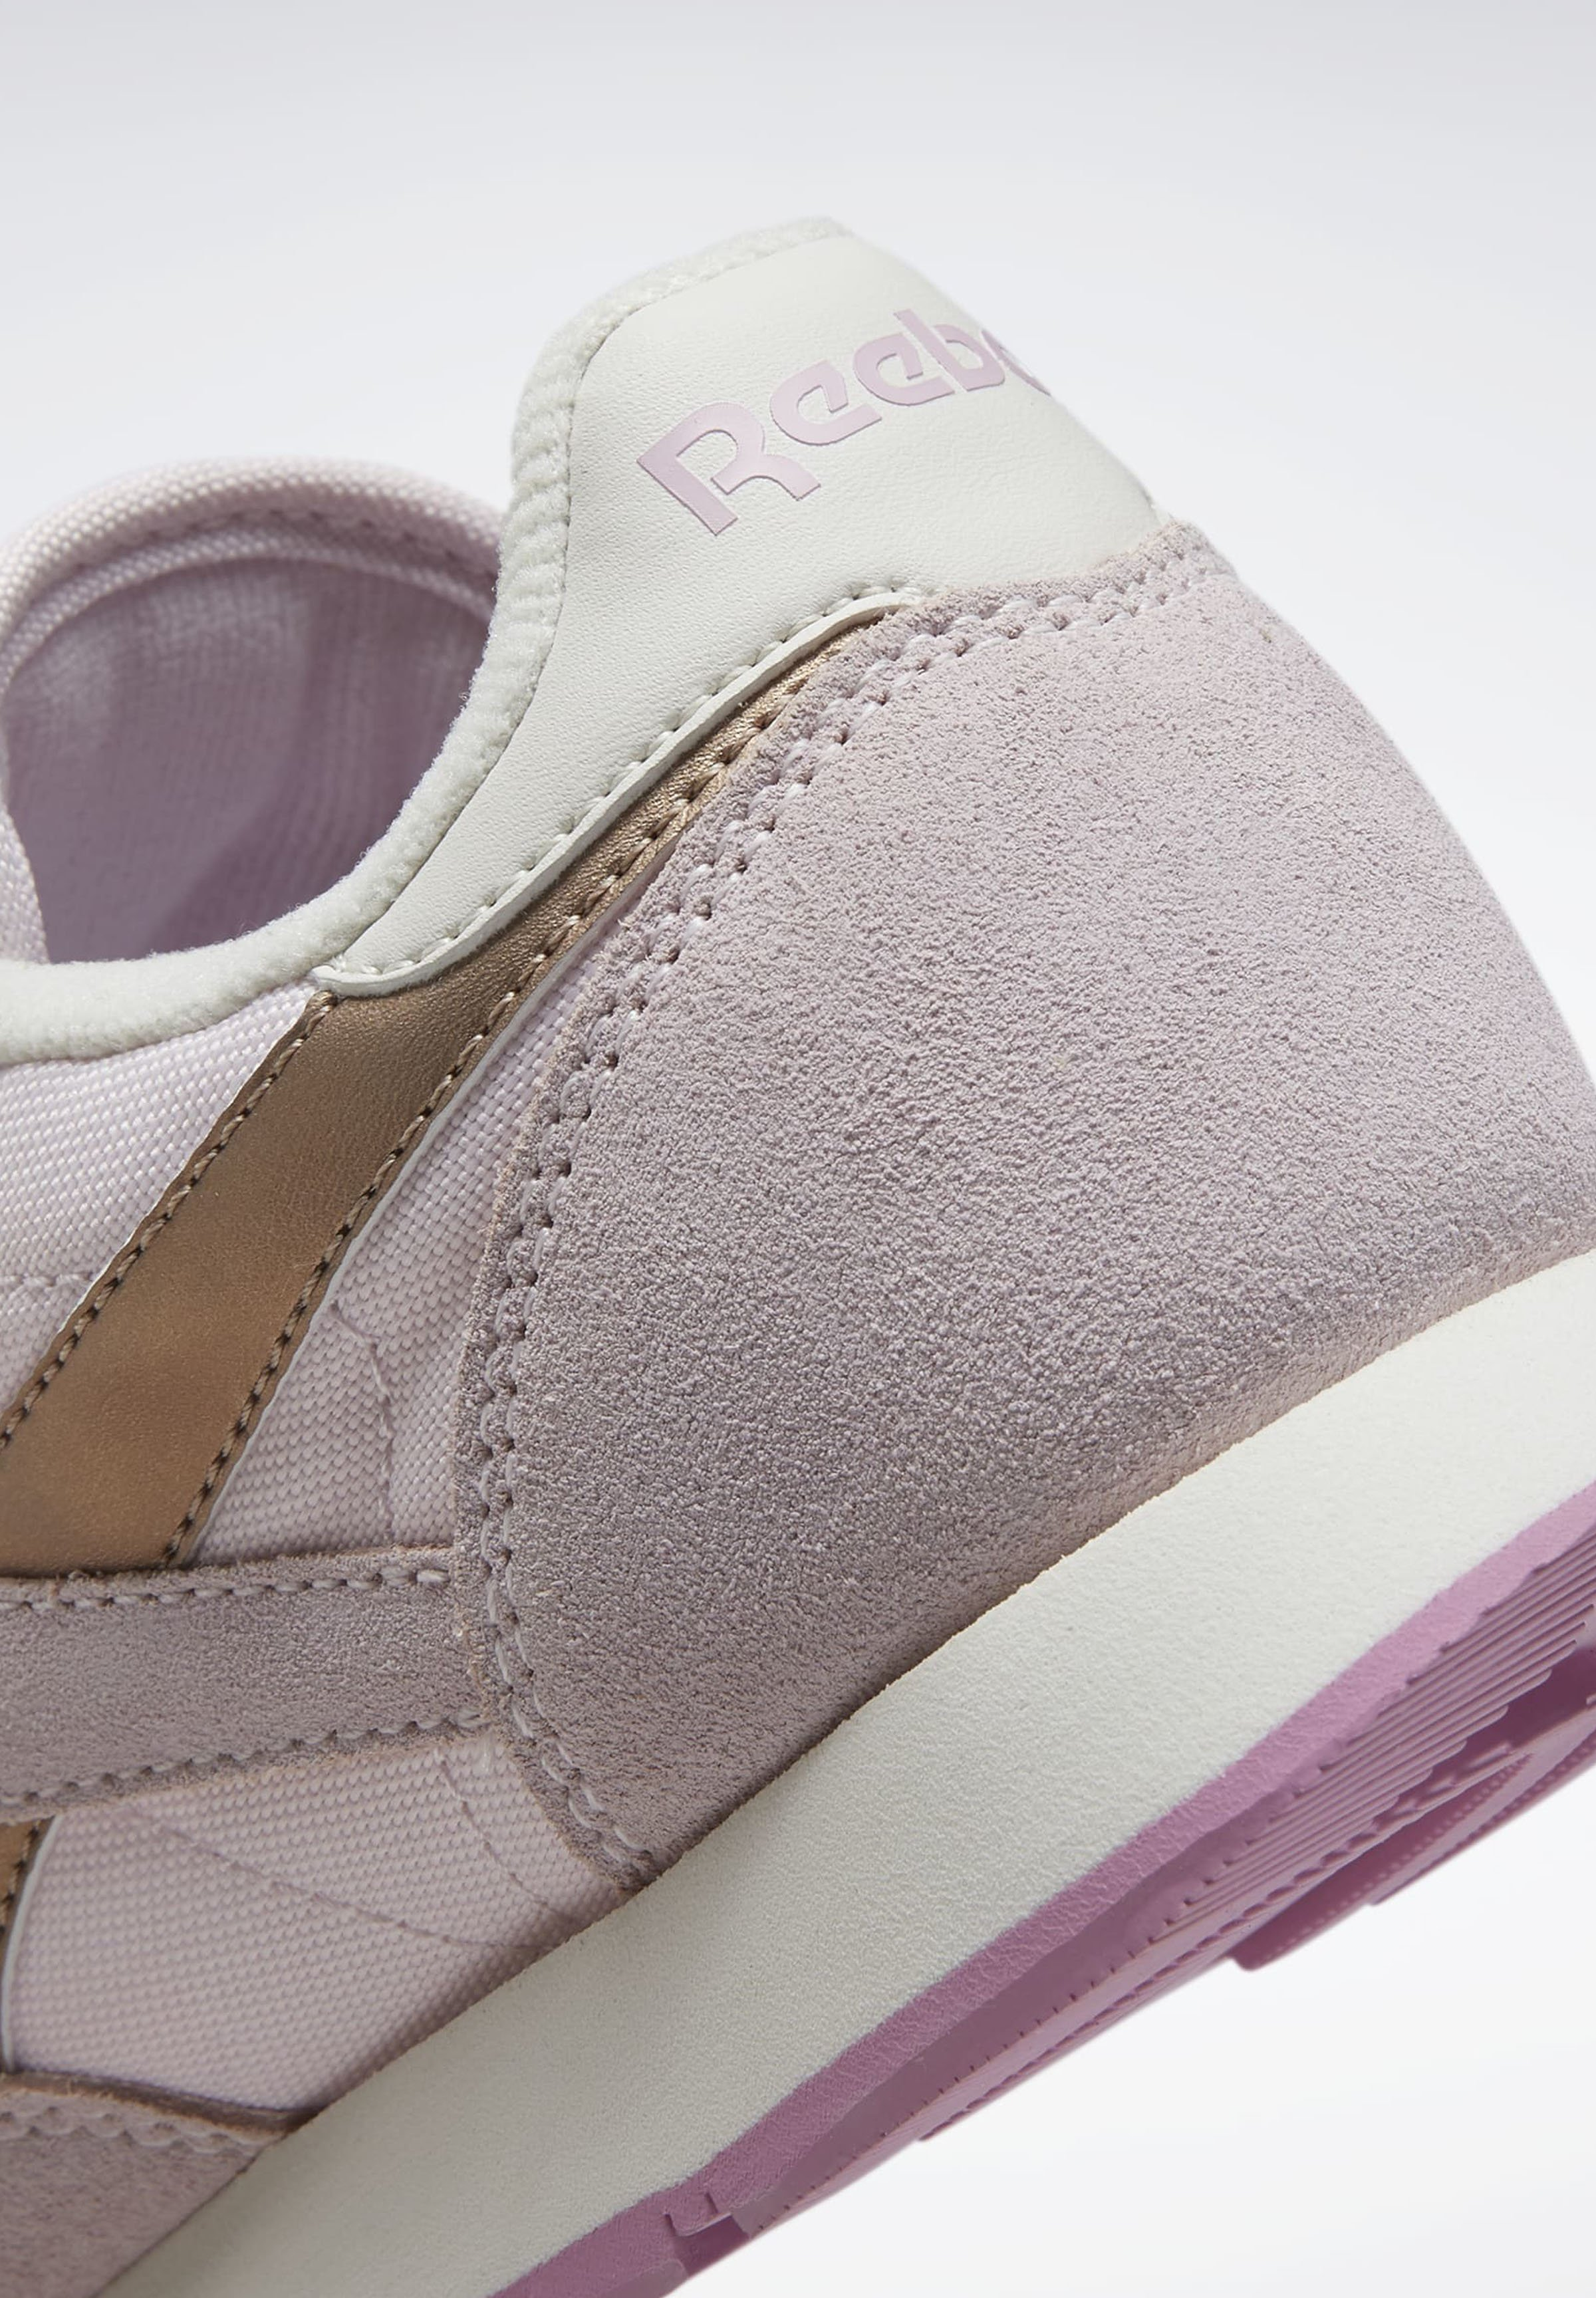 CLASSIC LEATHER SHOES Babyschoenen pink